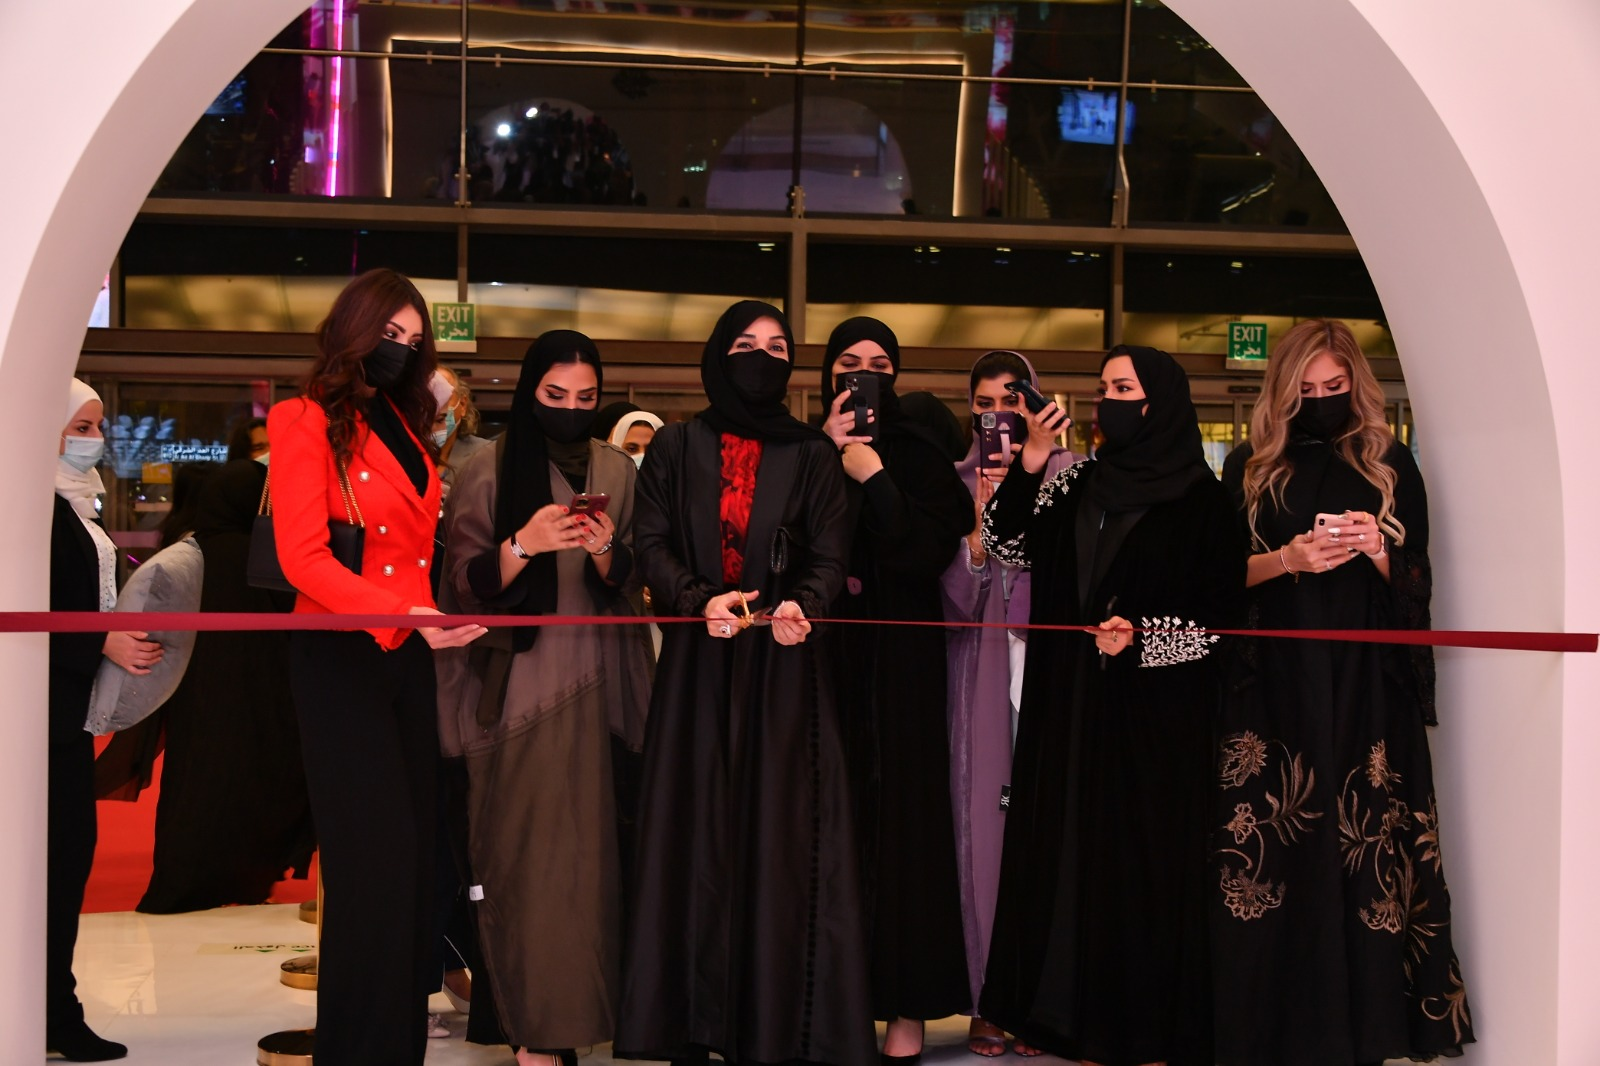 Merwad Exhibition Opens with Great Participation by Businesswomen from Qatar, Other Countries